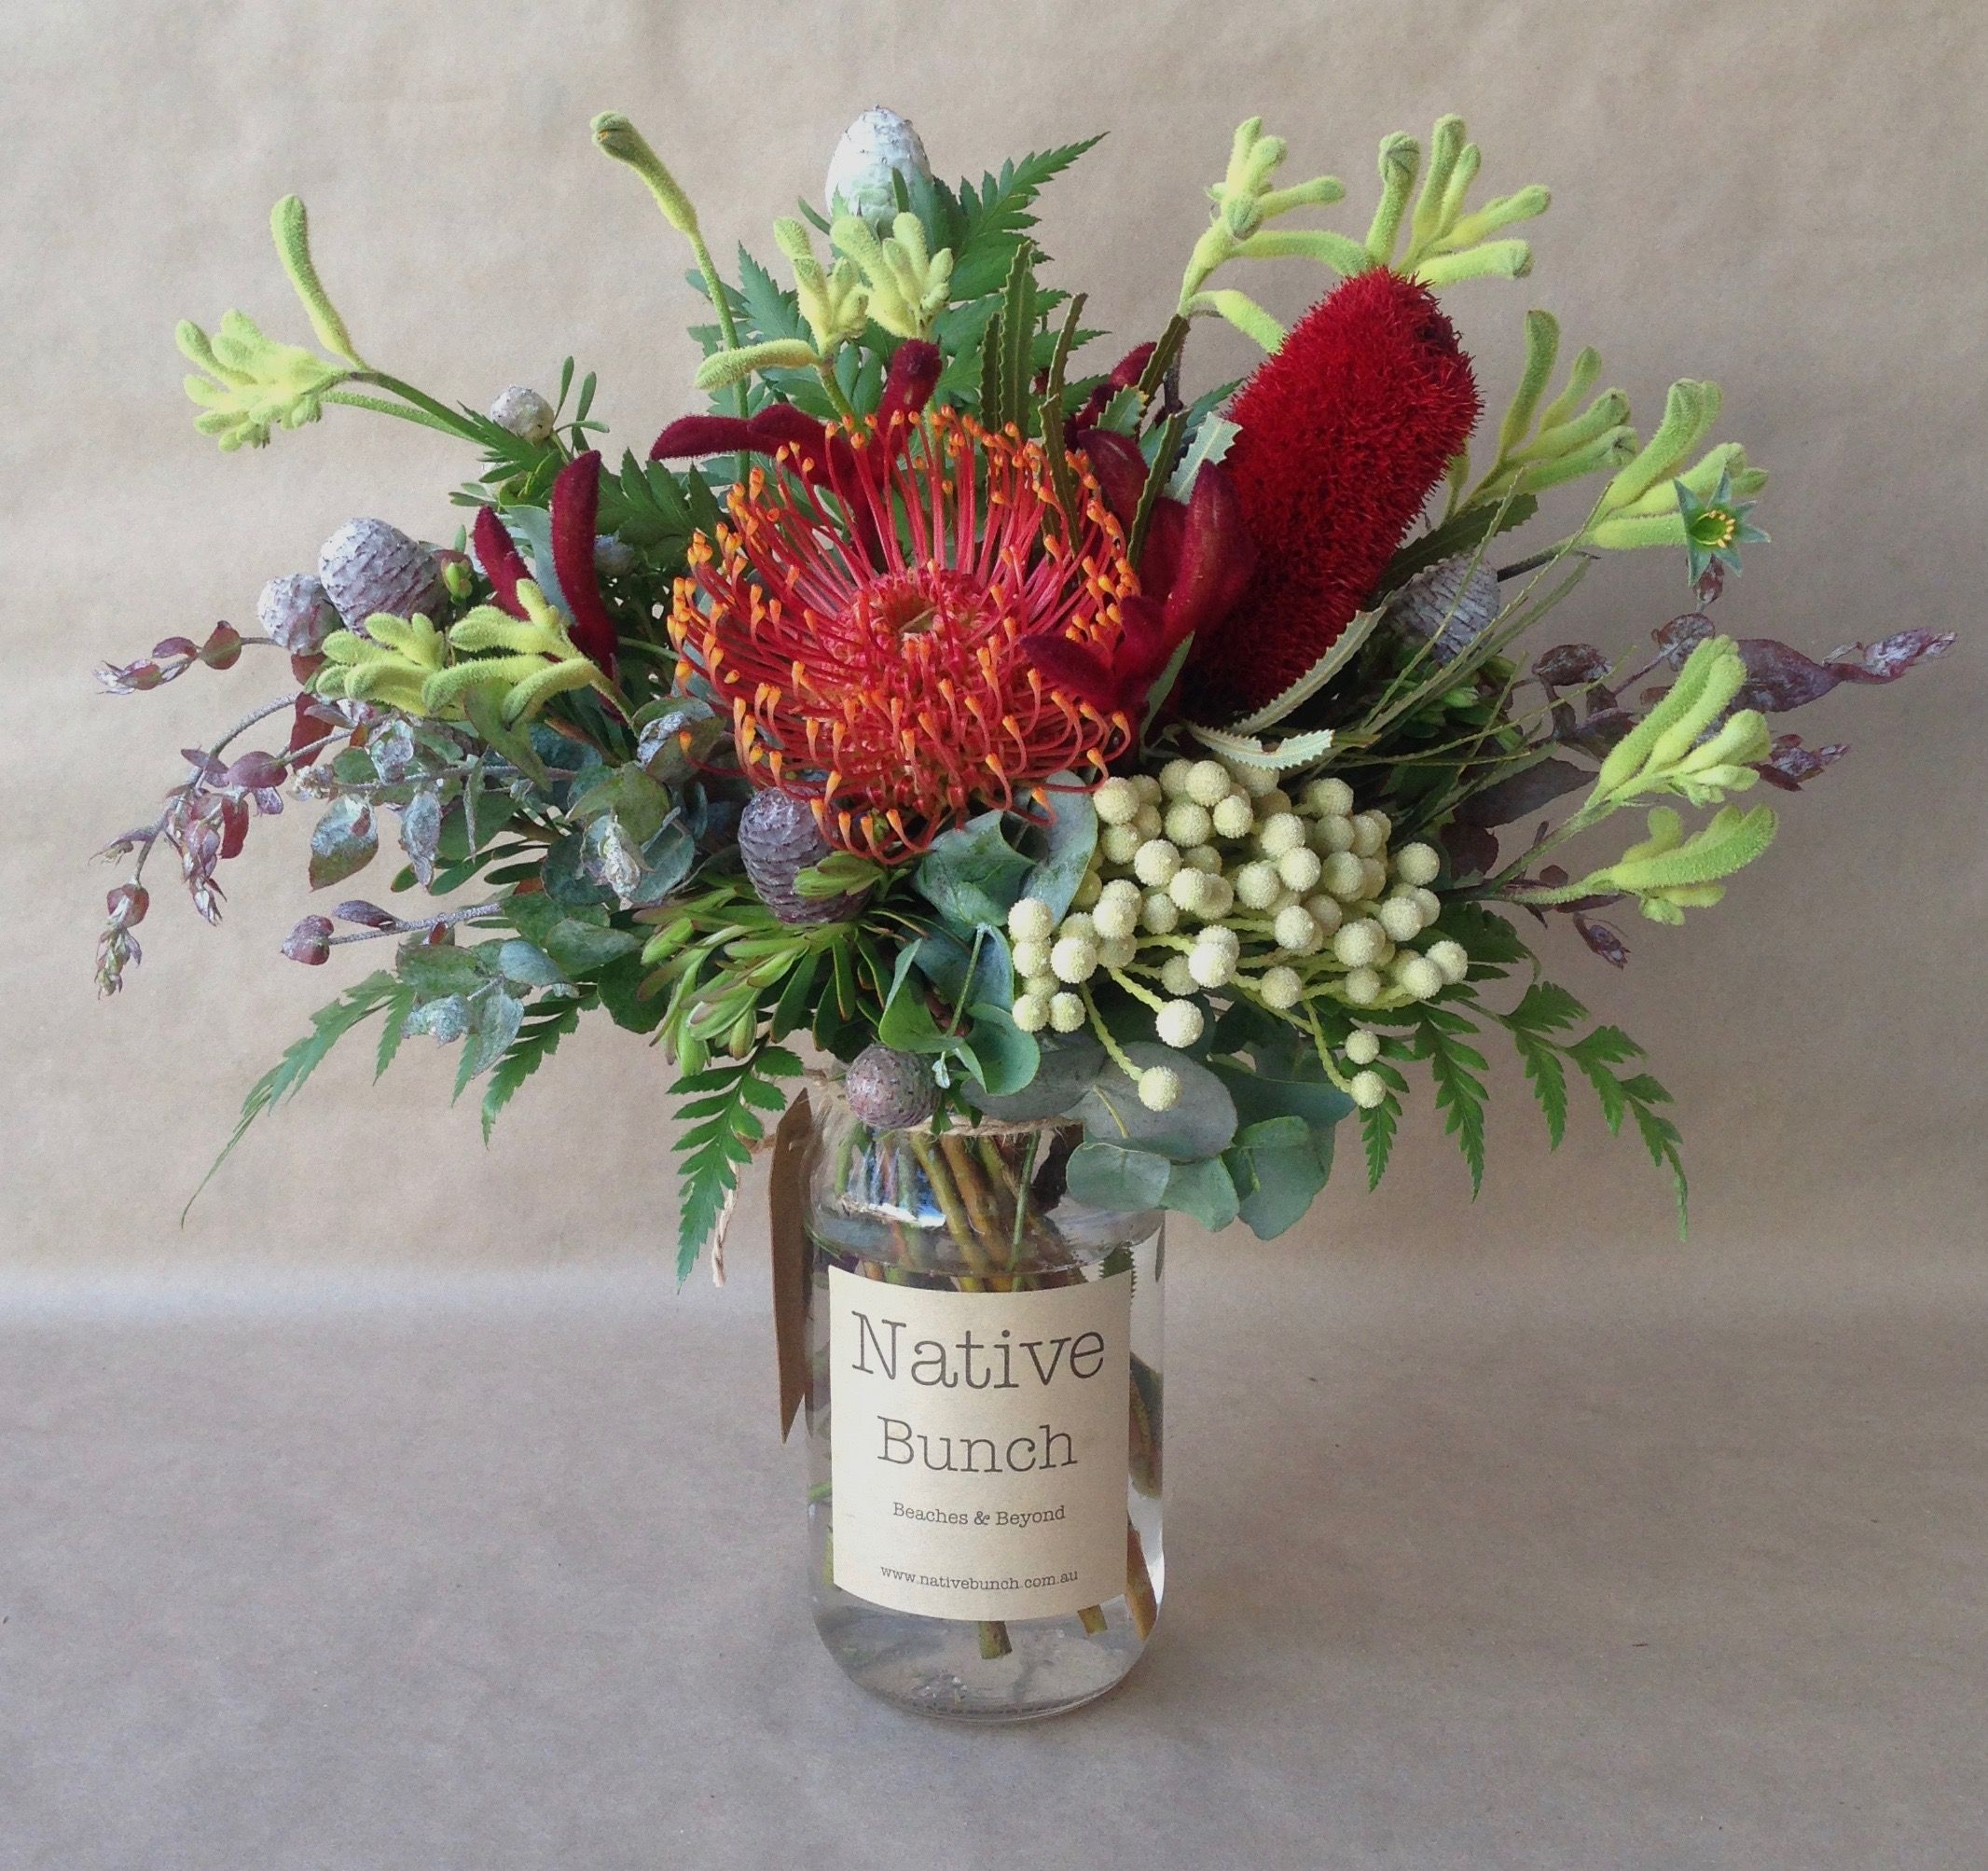 Australian Native Flowers Kangaroo Paw Banksia Christmas Cones Berzelius Leucos Australian Native Flowers Christmas Flower Arrangements Australian Flowers